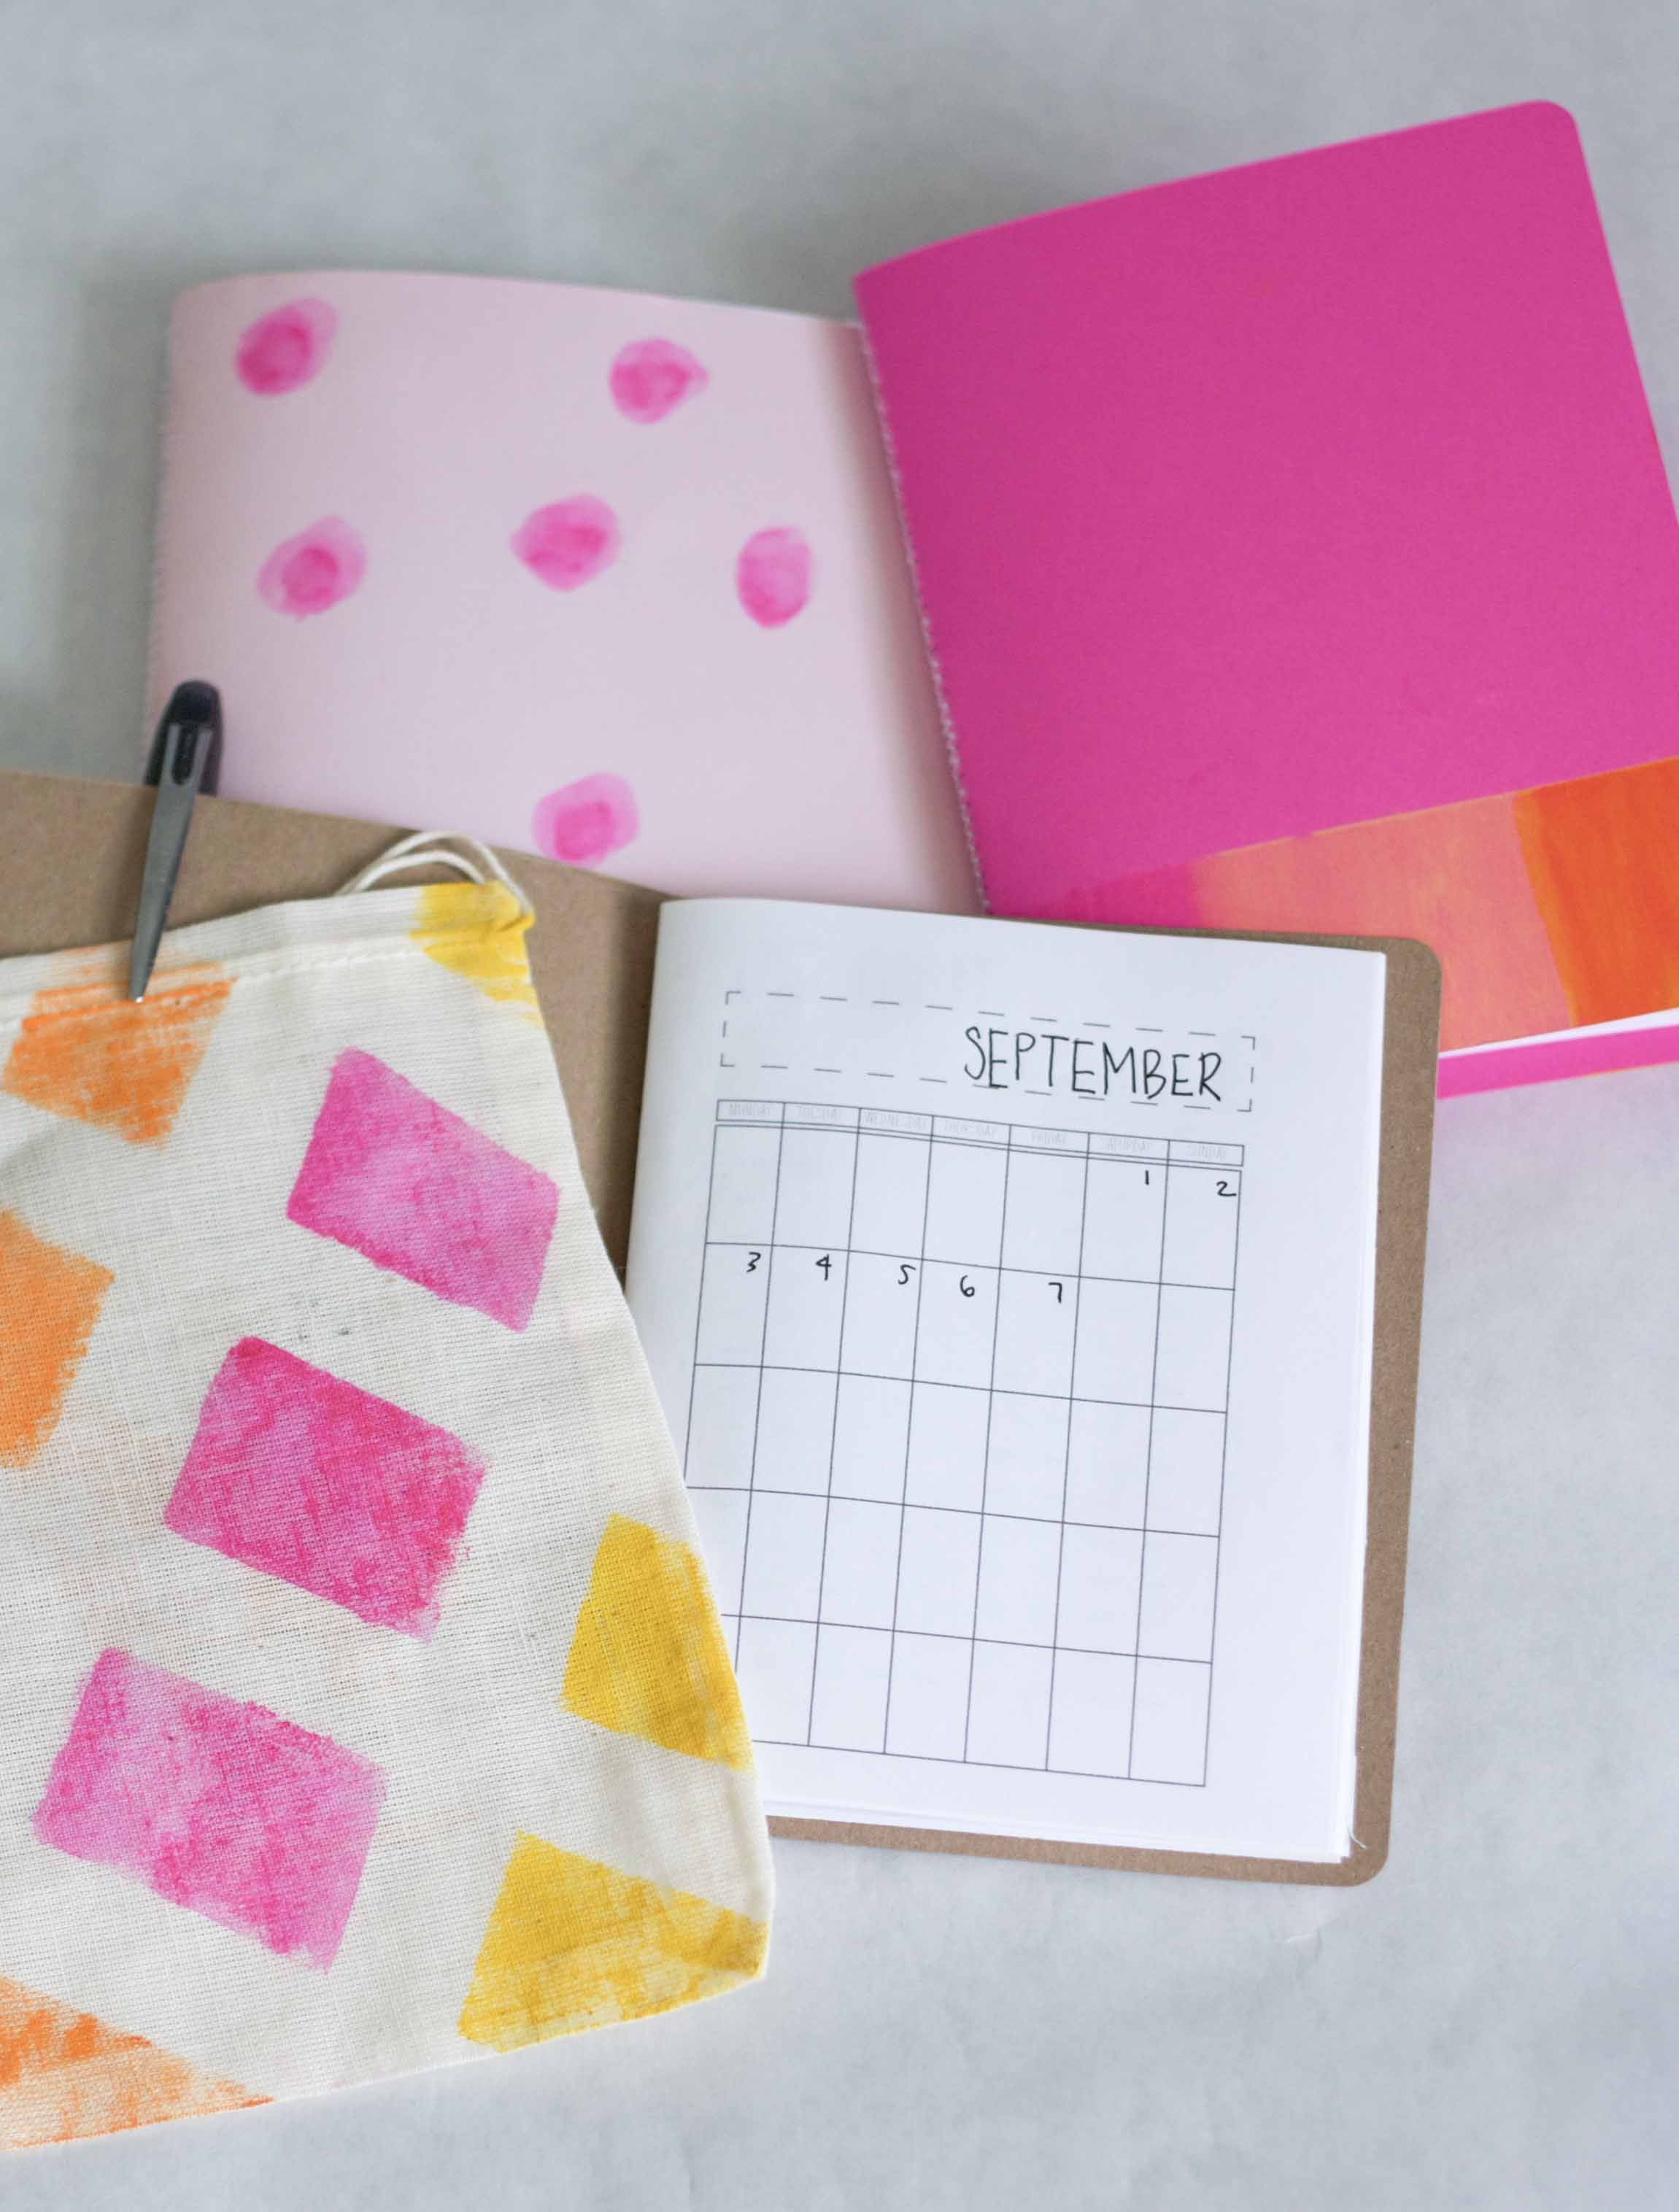 Diy Calendar Diary : Diy purse calendar journal crafts for me pinterest